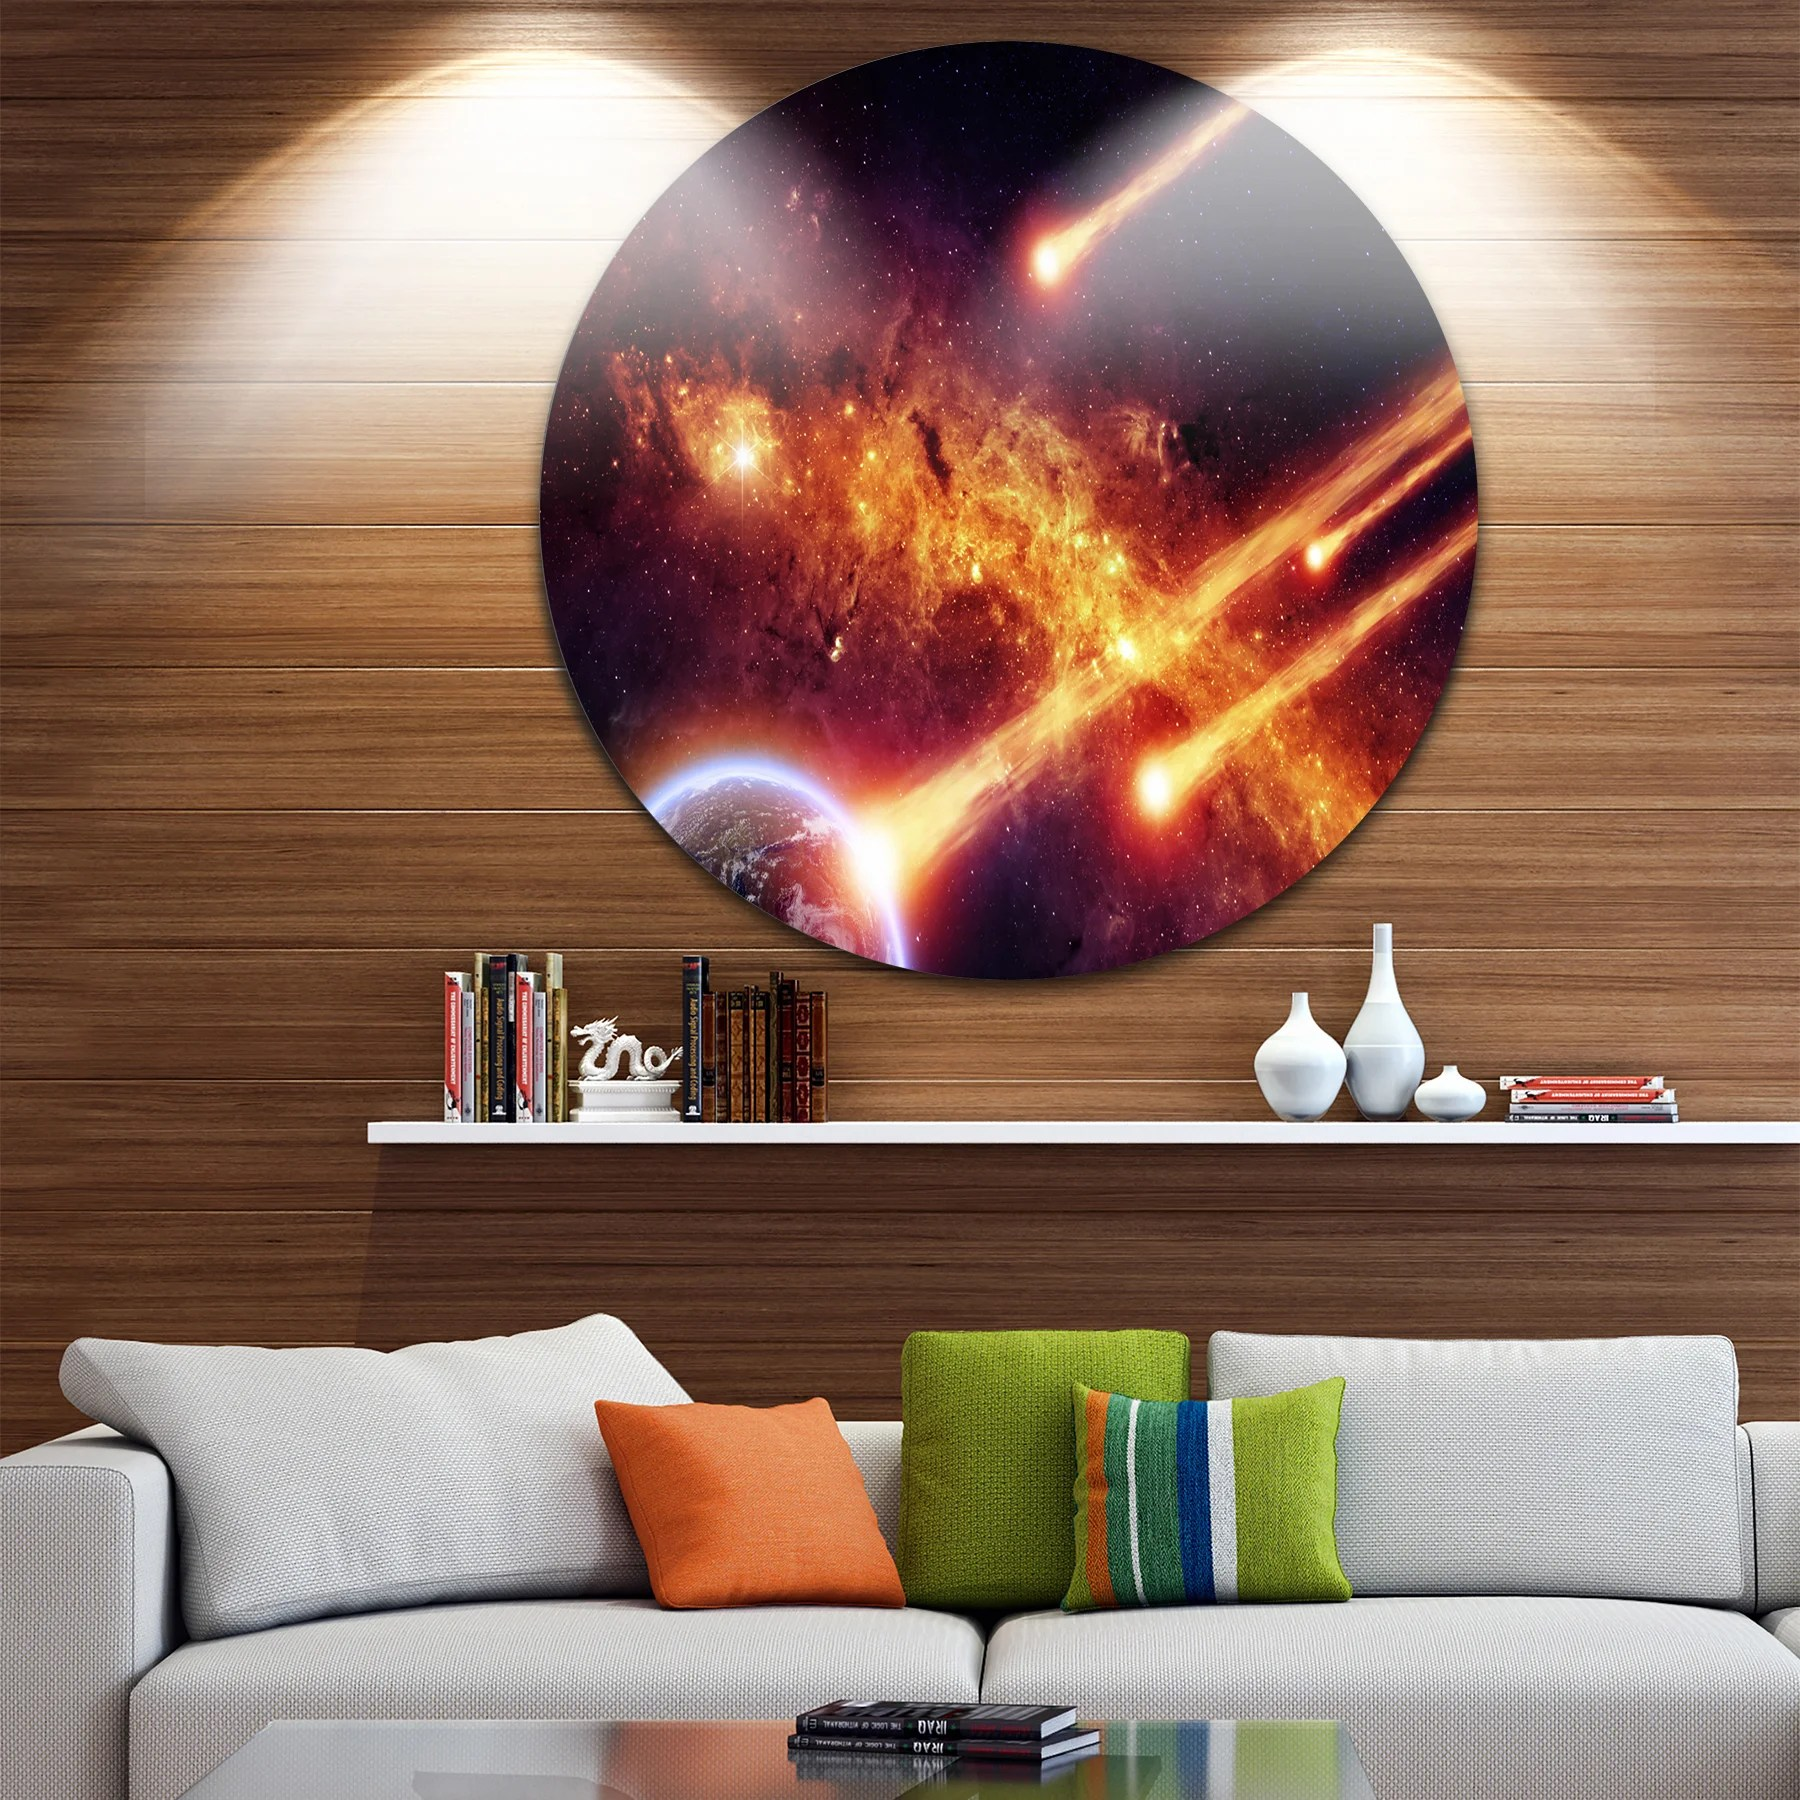 Planets Wall Art Designart Discontinued Product Modern Spacescape Disc Metal Artwork